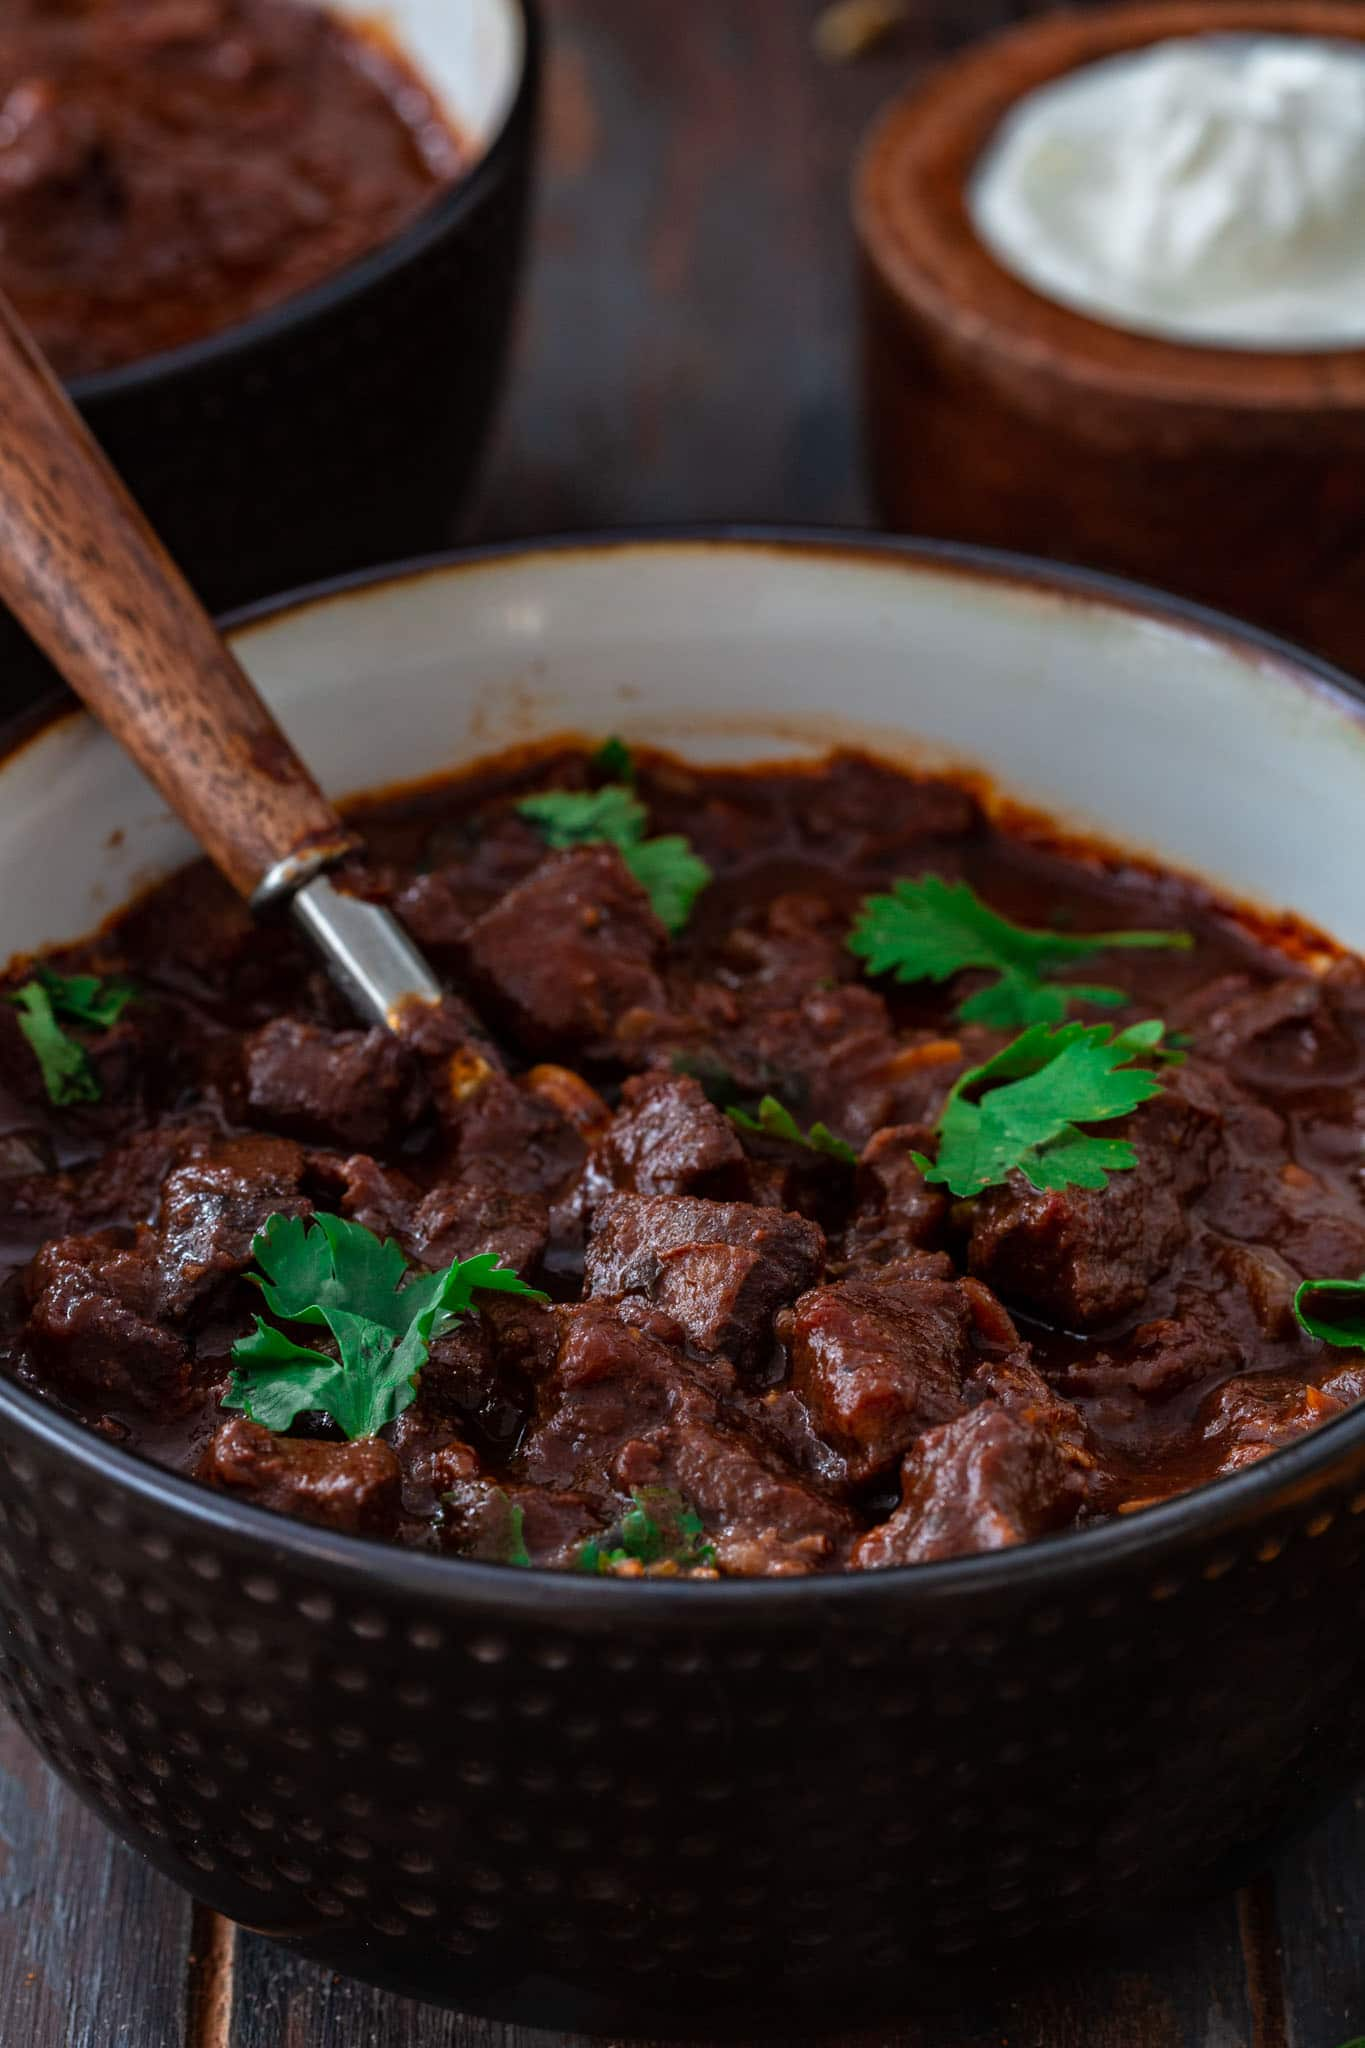 Rich and hearty Texas style chili made with chocolate